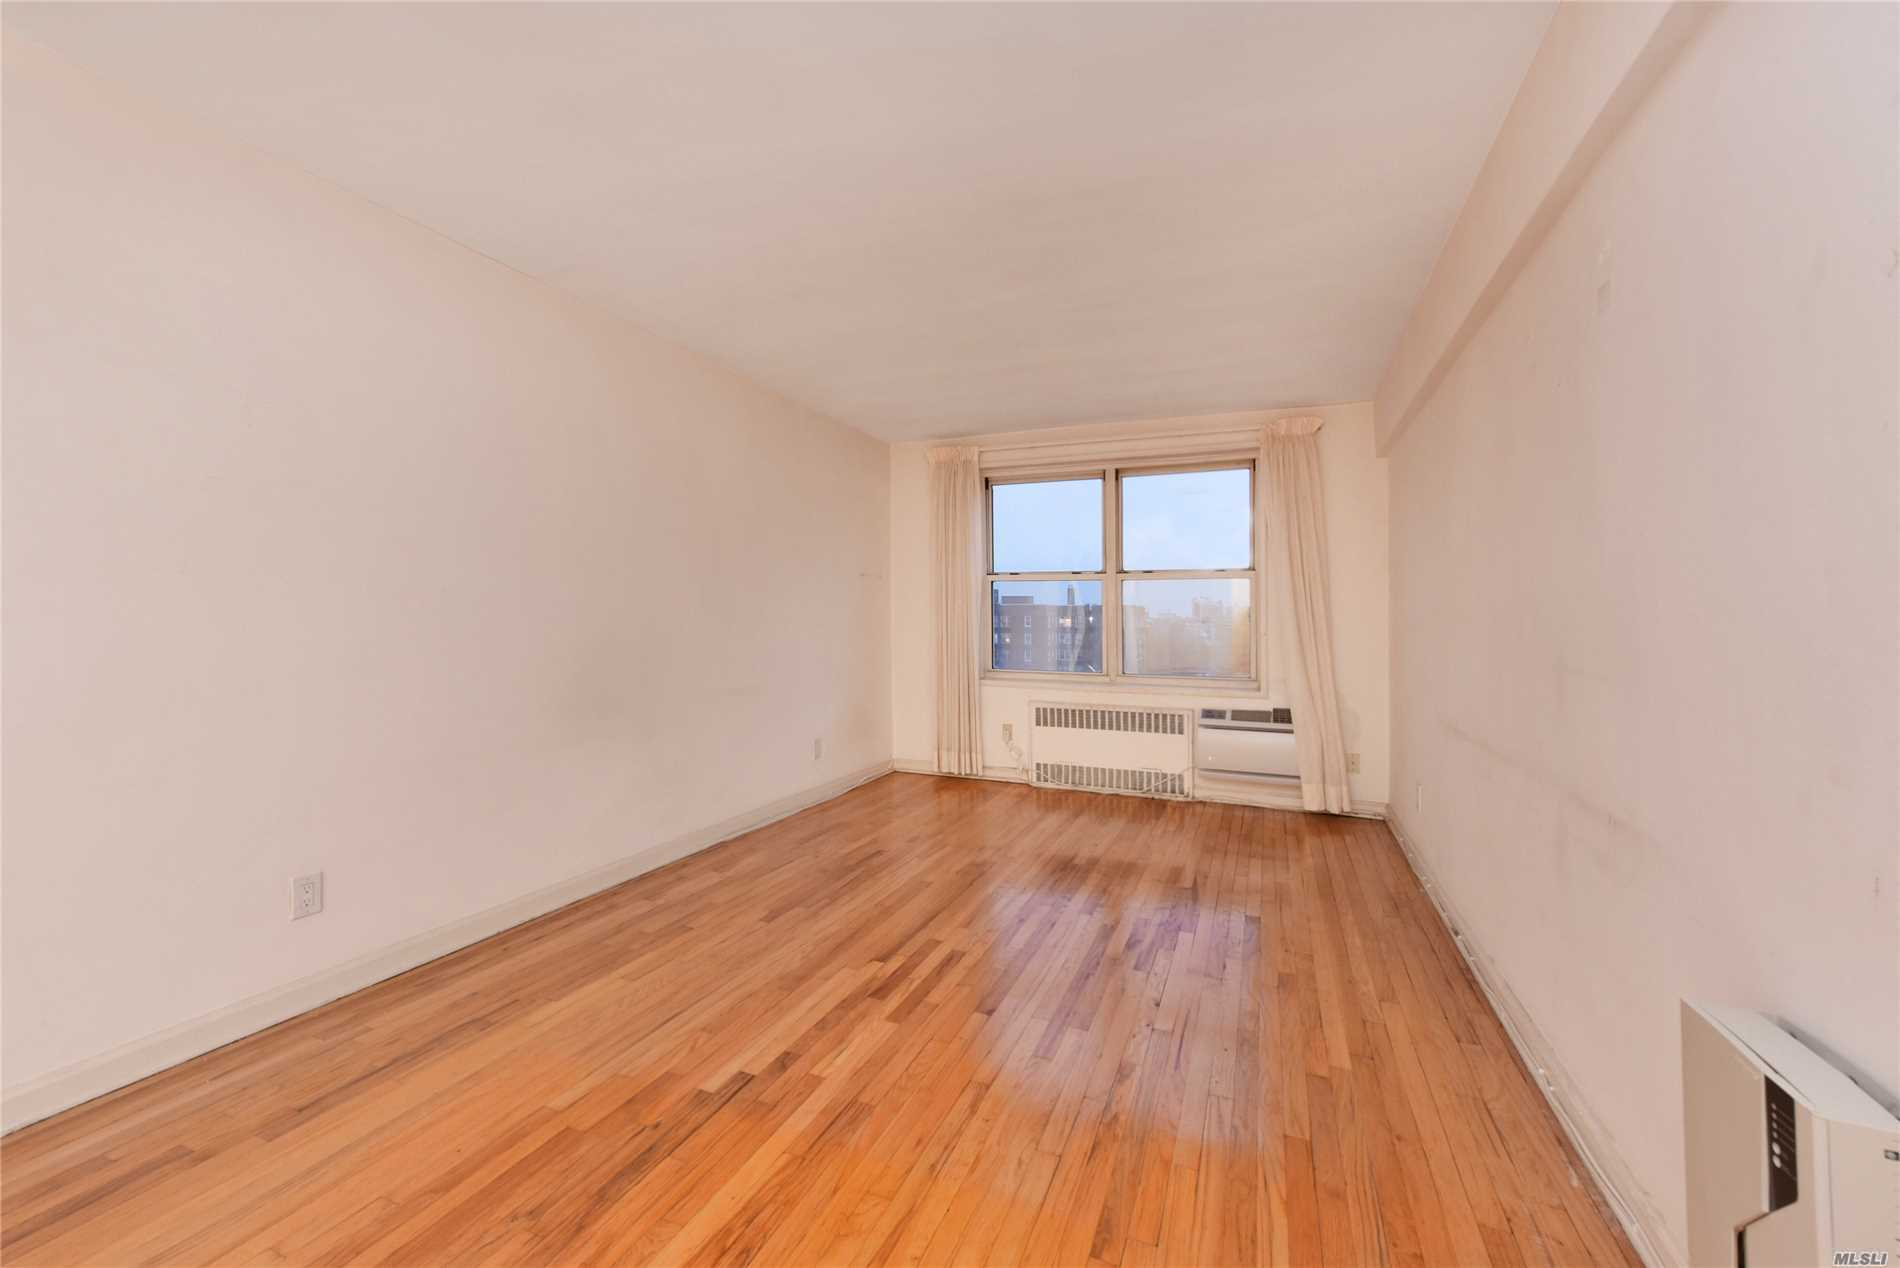 Large Spacious One Bedroom Corner Coop Unit On Top Floor, Estimate 800 Sf , New Finished Hardwood Flooring, South Exposure With Open View Of Downtown Flushing, Lot Of Closets, Formal Dining Area, Large Kitchen With Window And Updated Cabinets, Well Maintained Bathroom With Window, Dual Window In Bedroom, Quiet Court Yard Of The Complex, Gym, Laundry, Outdoor Gardens, Playground Close To Bus Line, Major Highways, Post Office, Library , Low Maintenance Including All Utilities, Owner Occupied No Sublet.